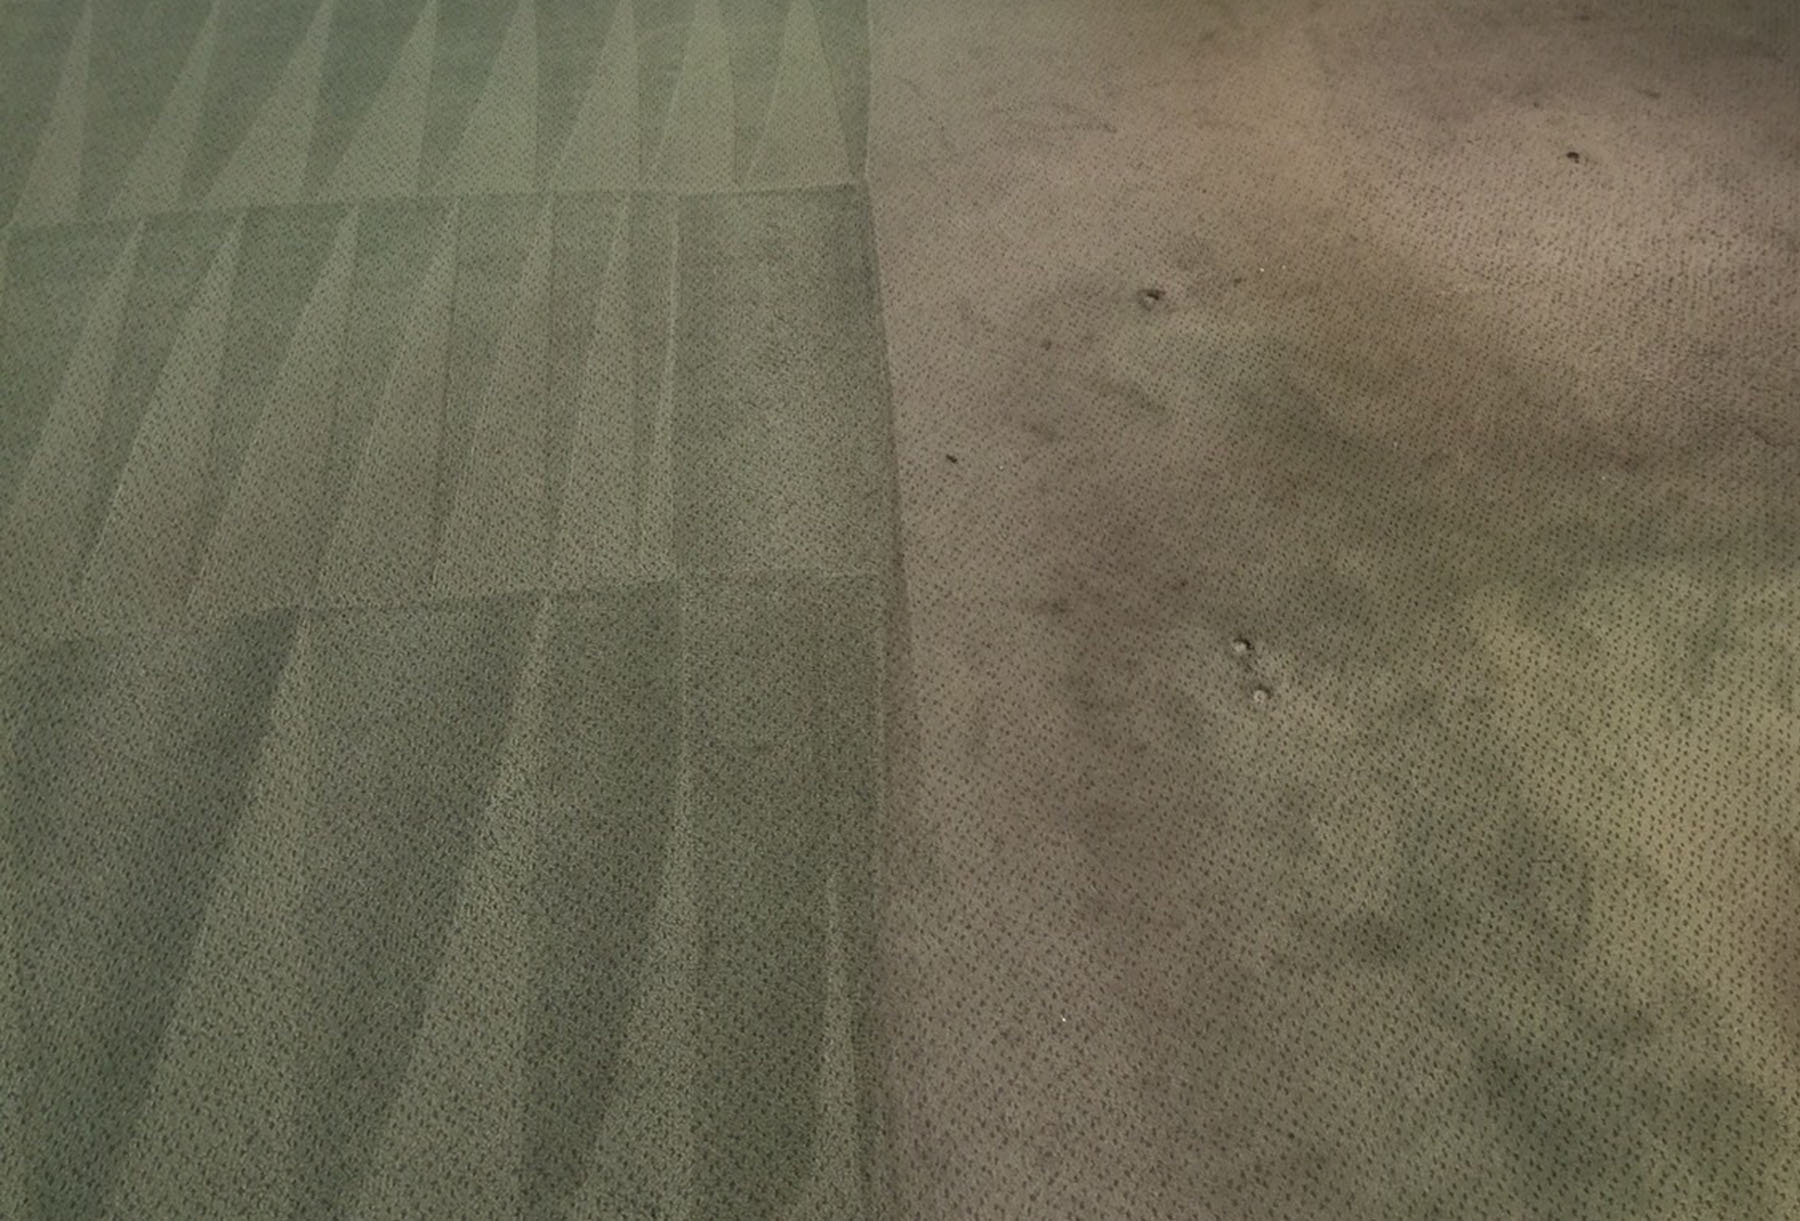 Example of synthetic carpet cleaning